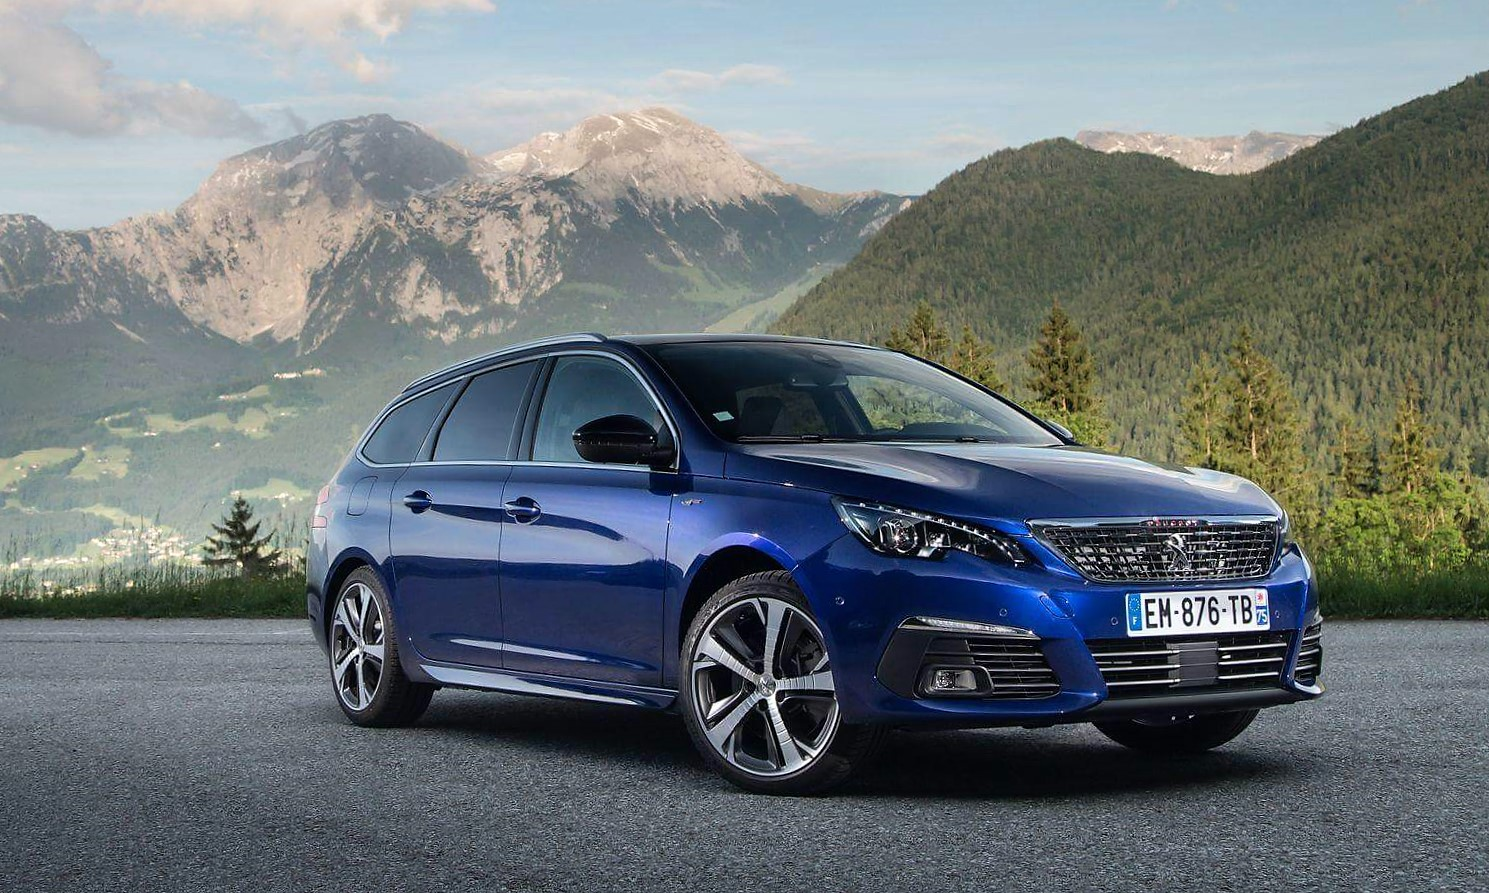 peugeot 308 sw gt rural una pena que no se venda en argentina automotiva. Black Bedroom Furniture Sets. Home Design Ideas